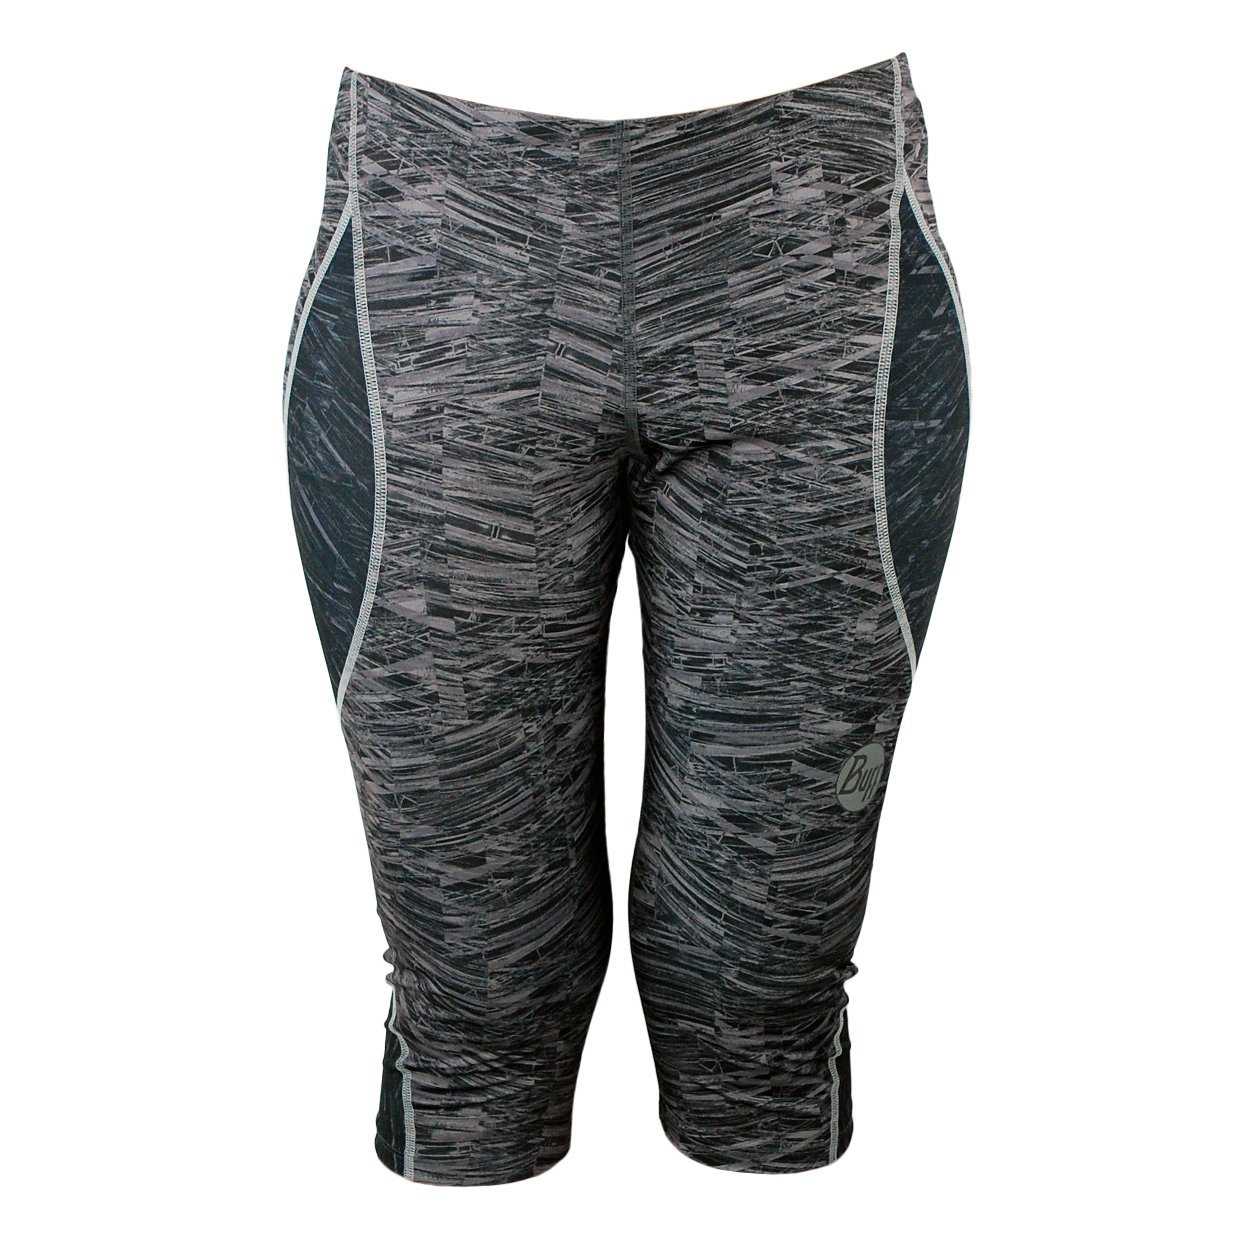 Buff Herren Running Length Tights Spinell -– Farbe= Moonless